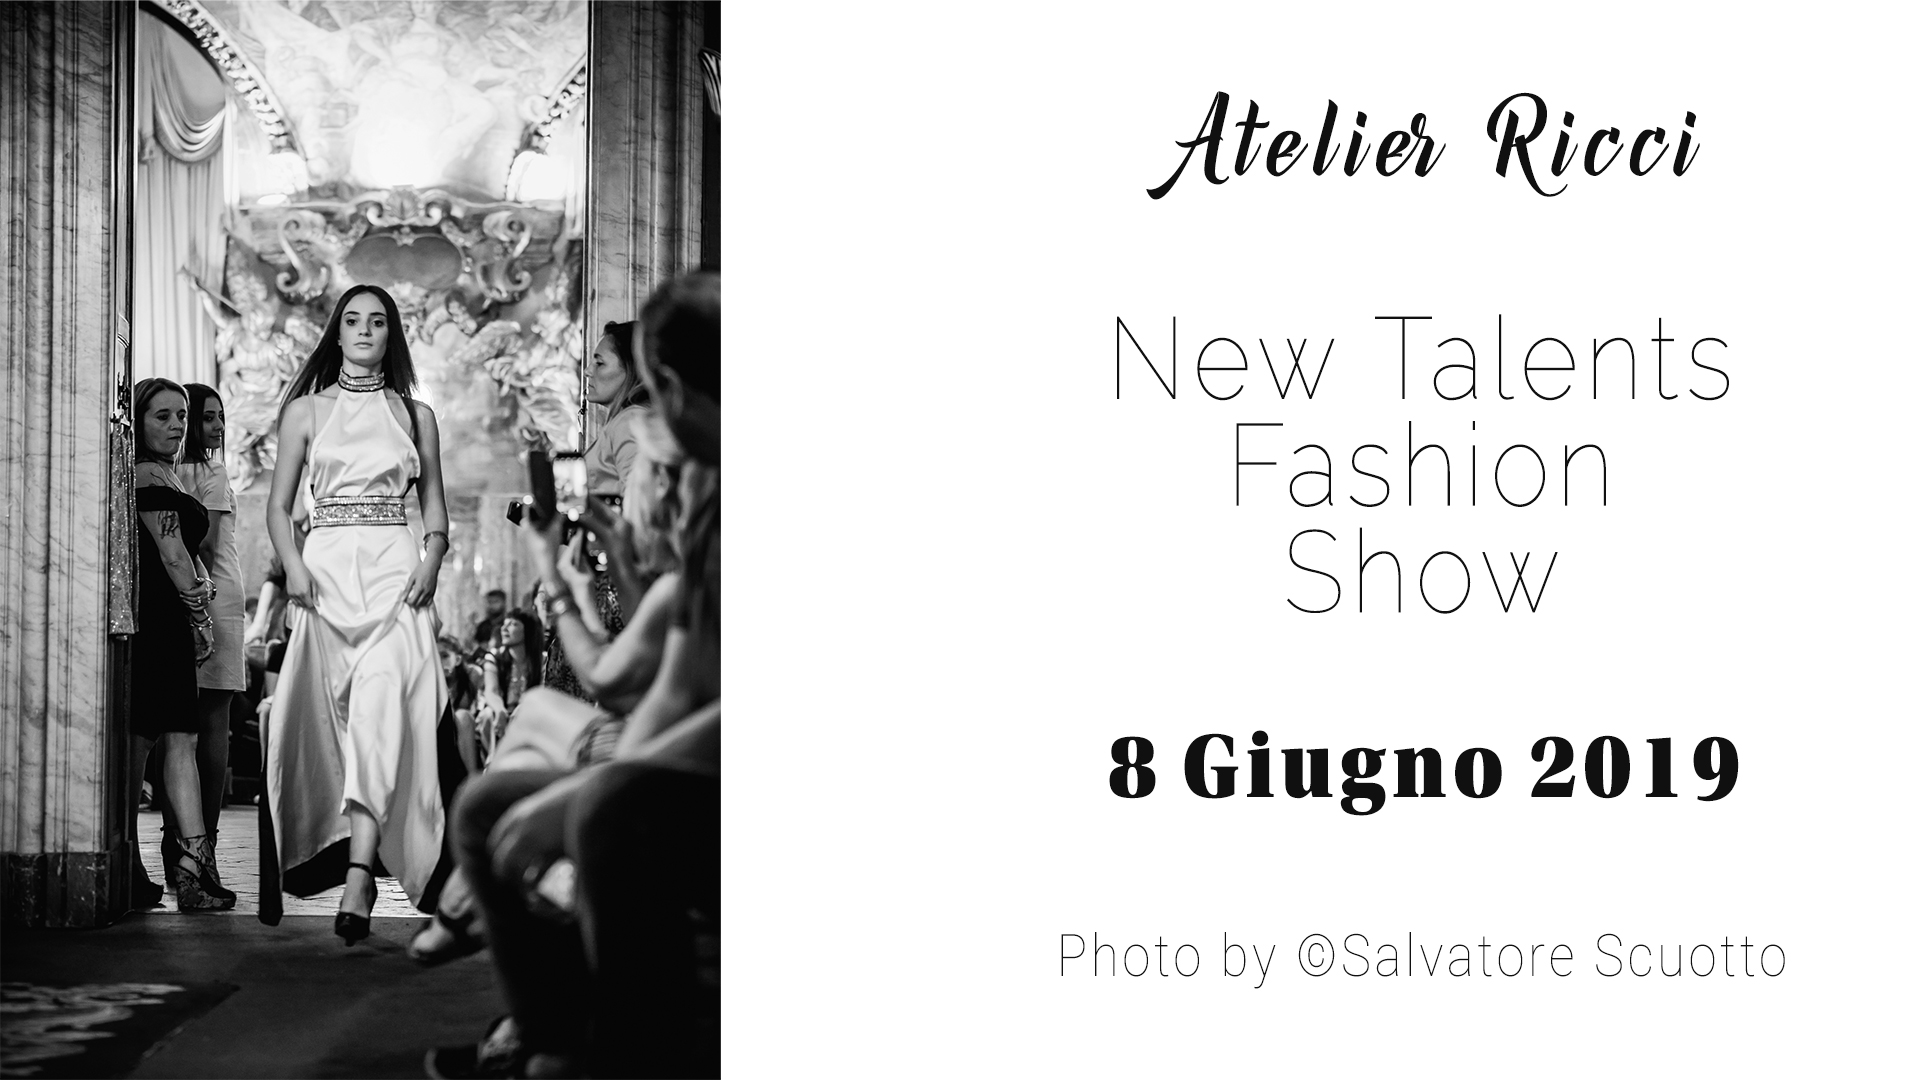 Atelier Ricci Lucca New Talents Fashion Show